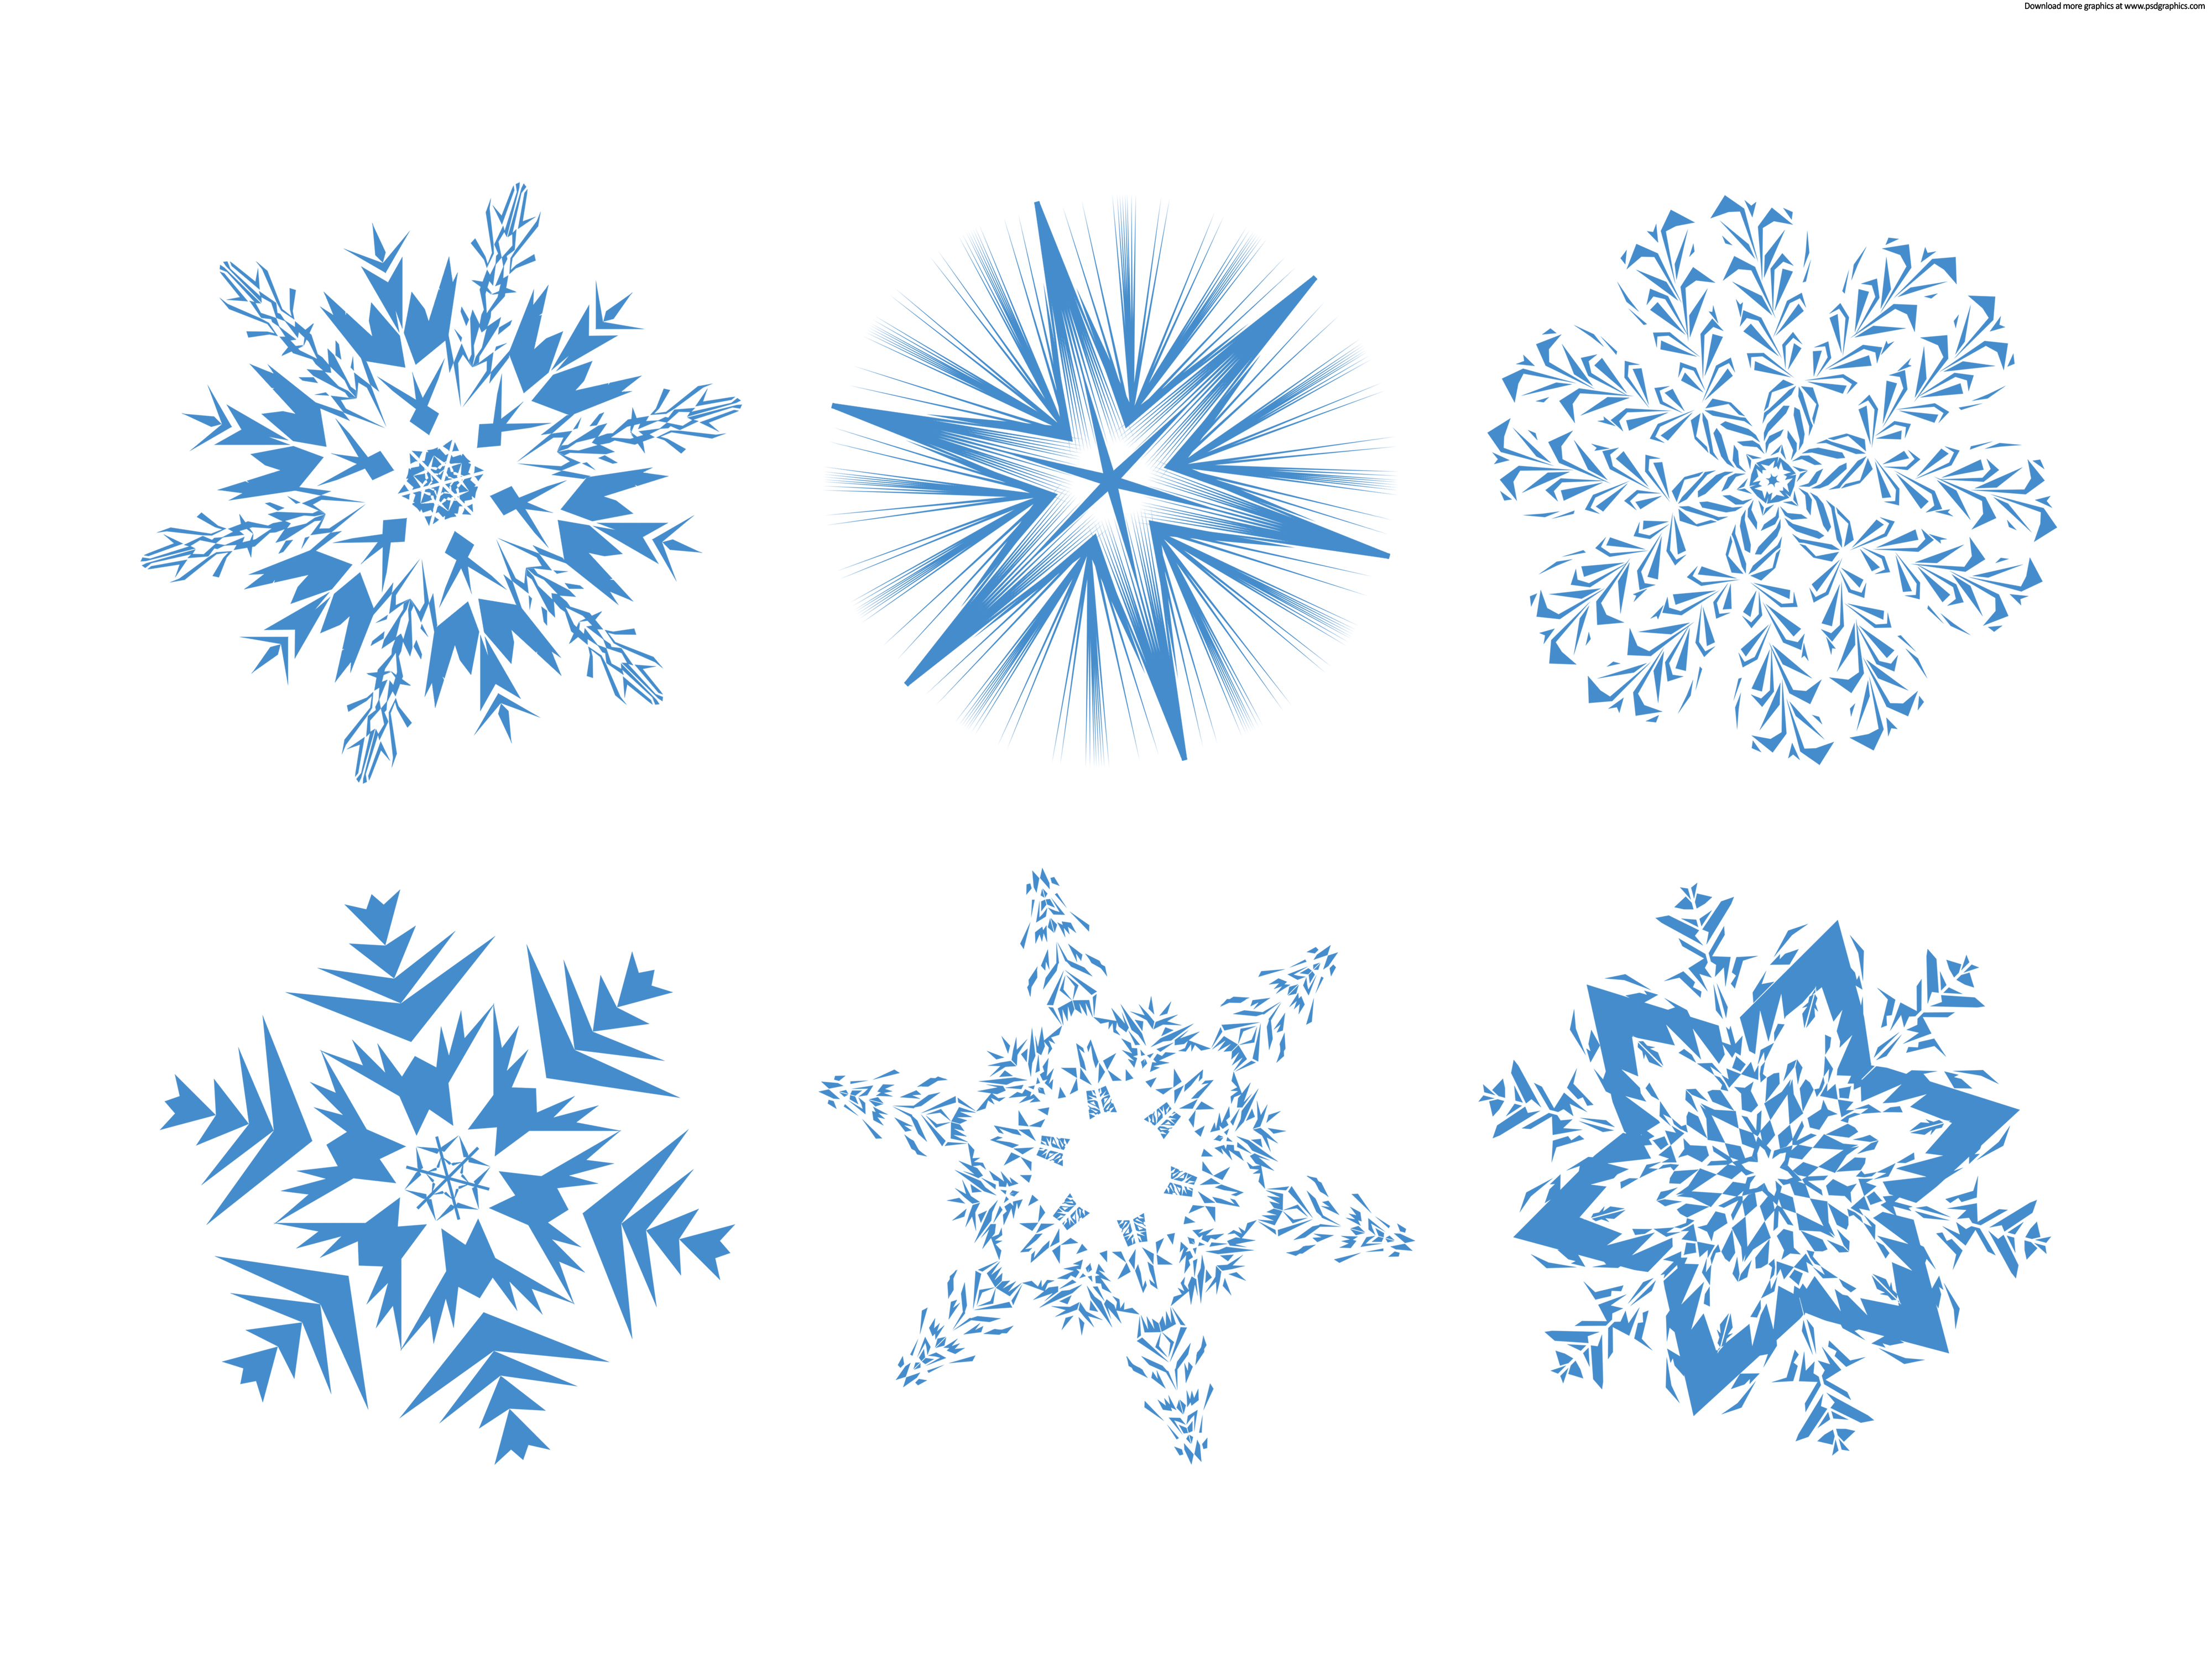 Google Image Result For Http Www Psdgraphics Com File Png Transparent Snowflakes Png Snowflake Background Snowflake Images Hand Painting Art